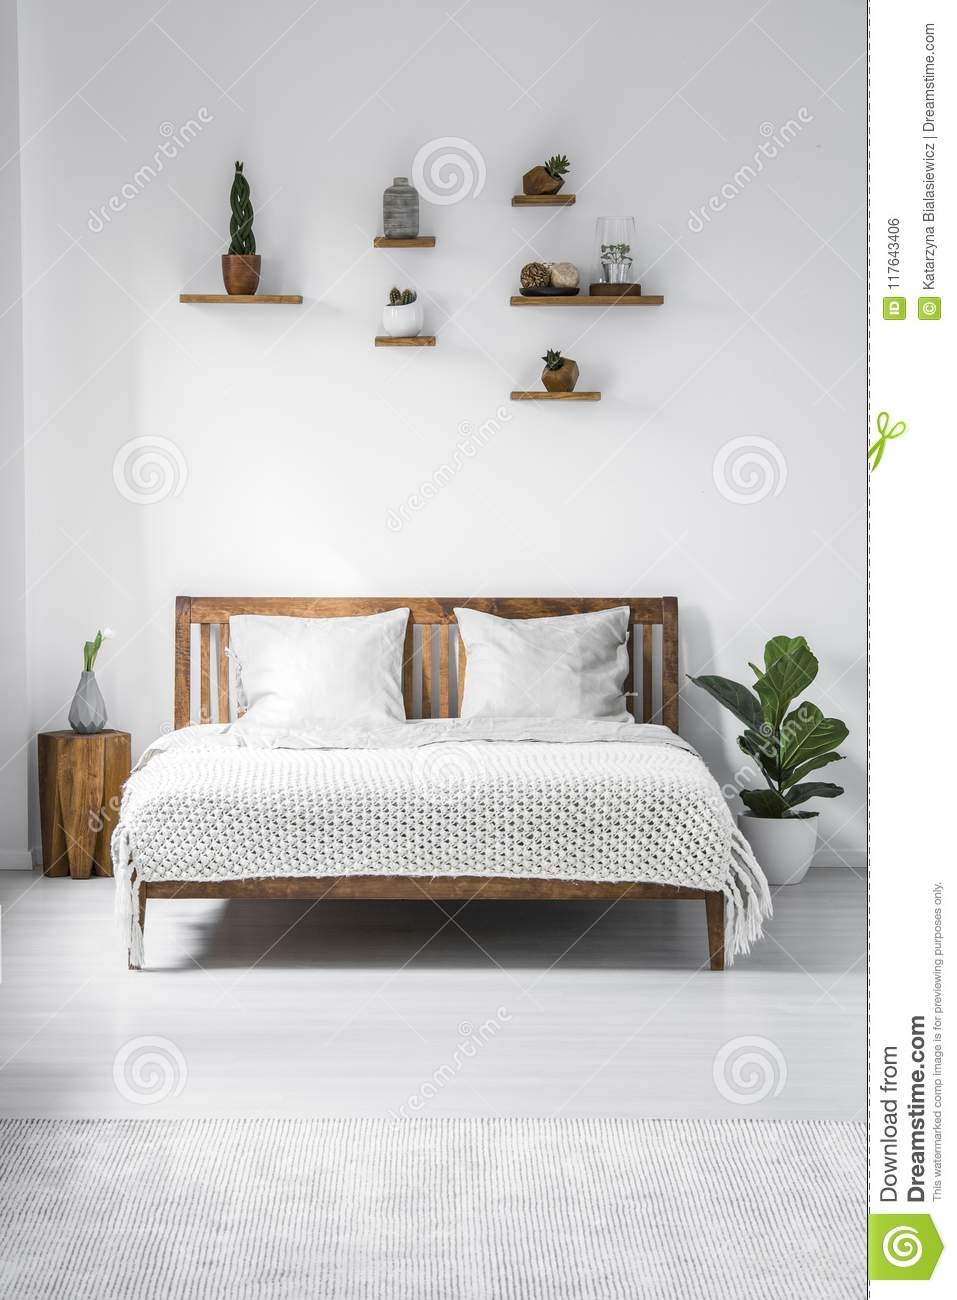 4 940 Small Shelves Photos Free Royalty Free Stock Photos From Dreamstime